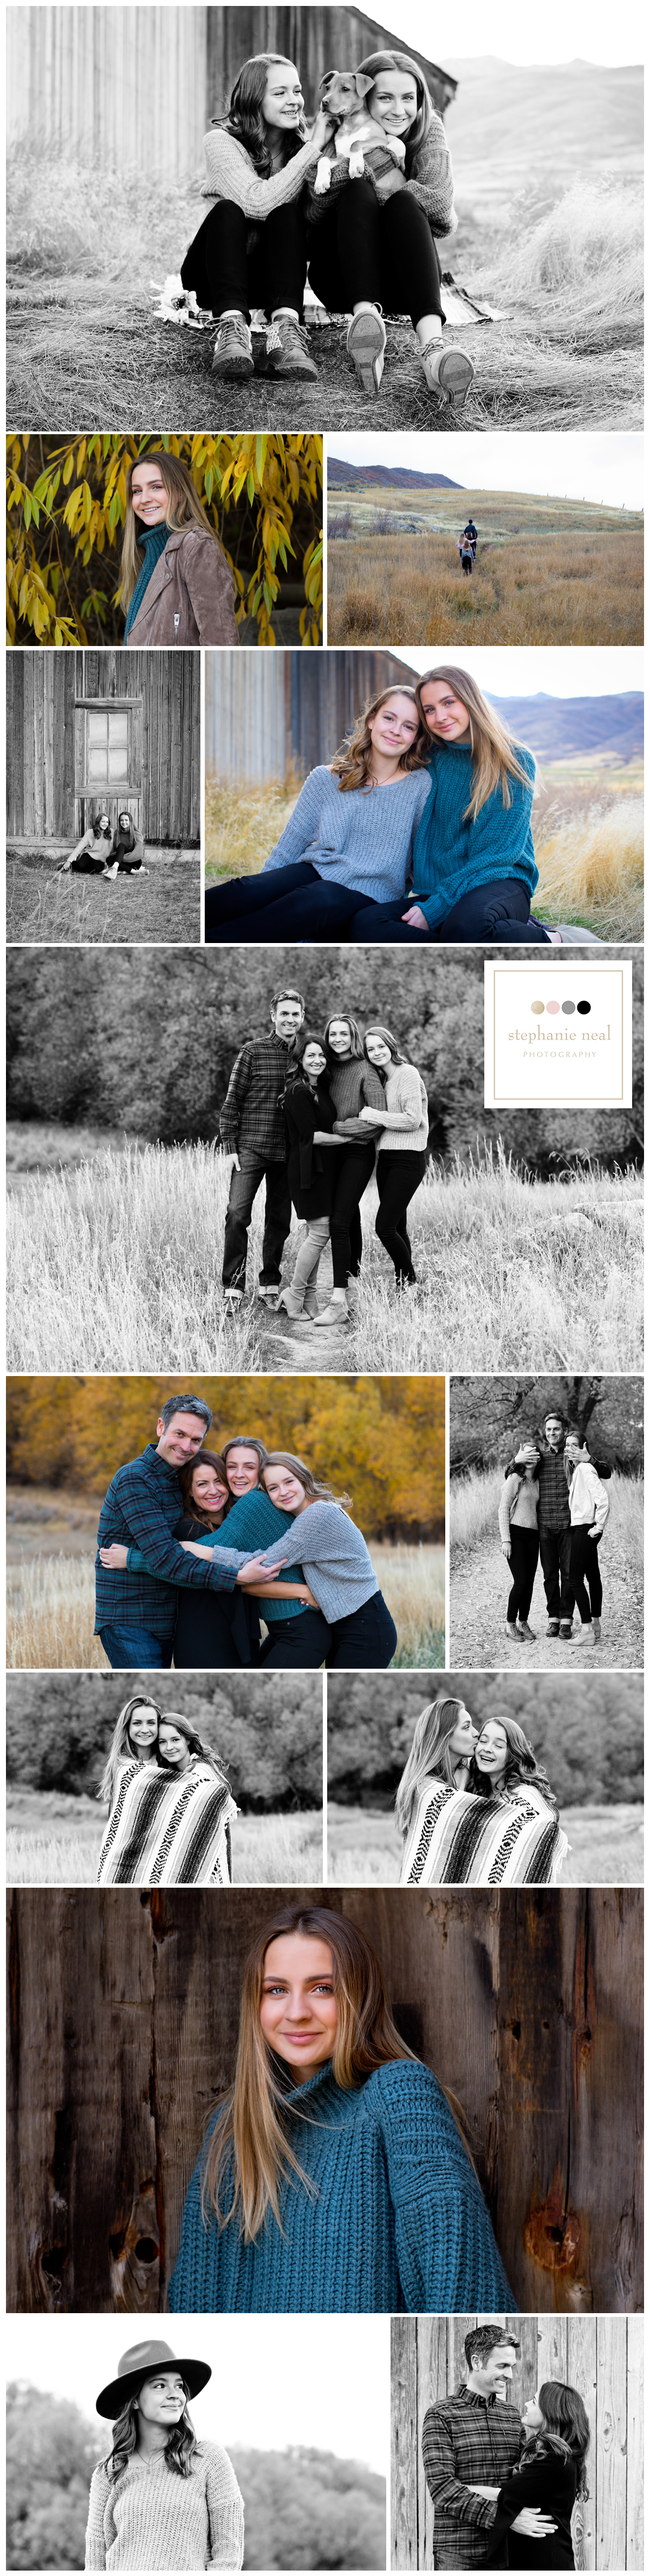 Stephanie Neal Photography, Park City Family Senior Portrait Photographer.jpg